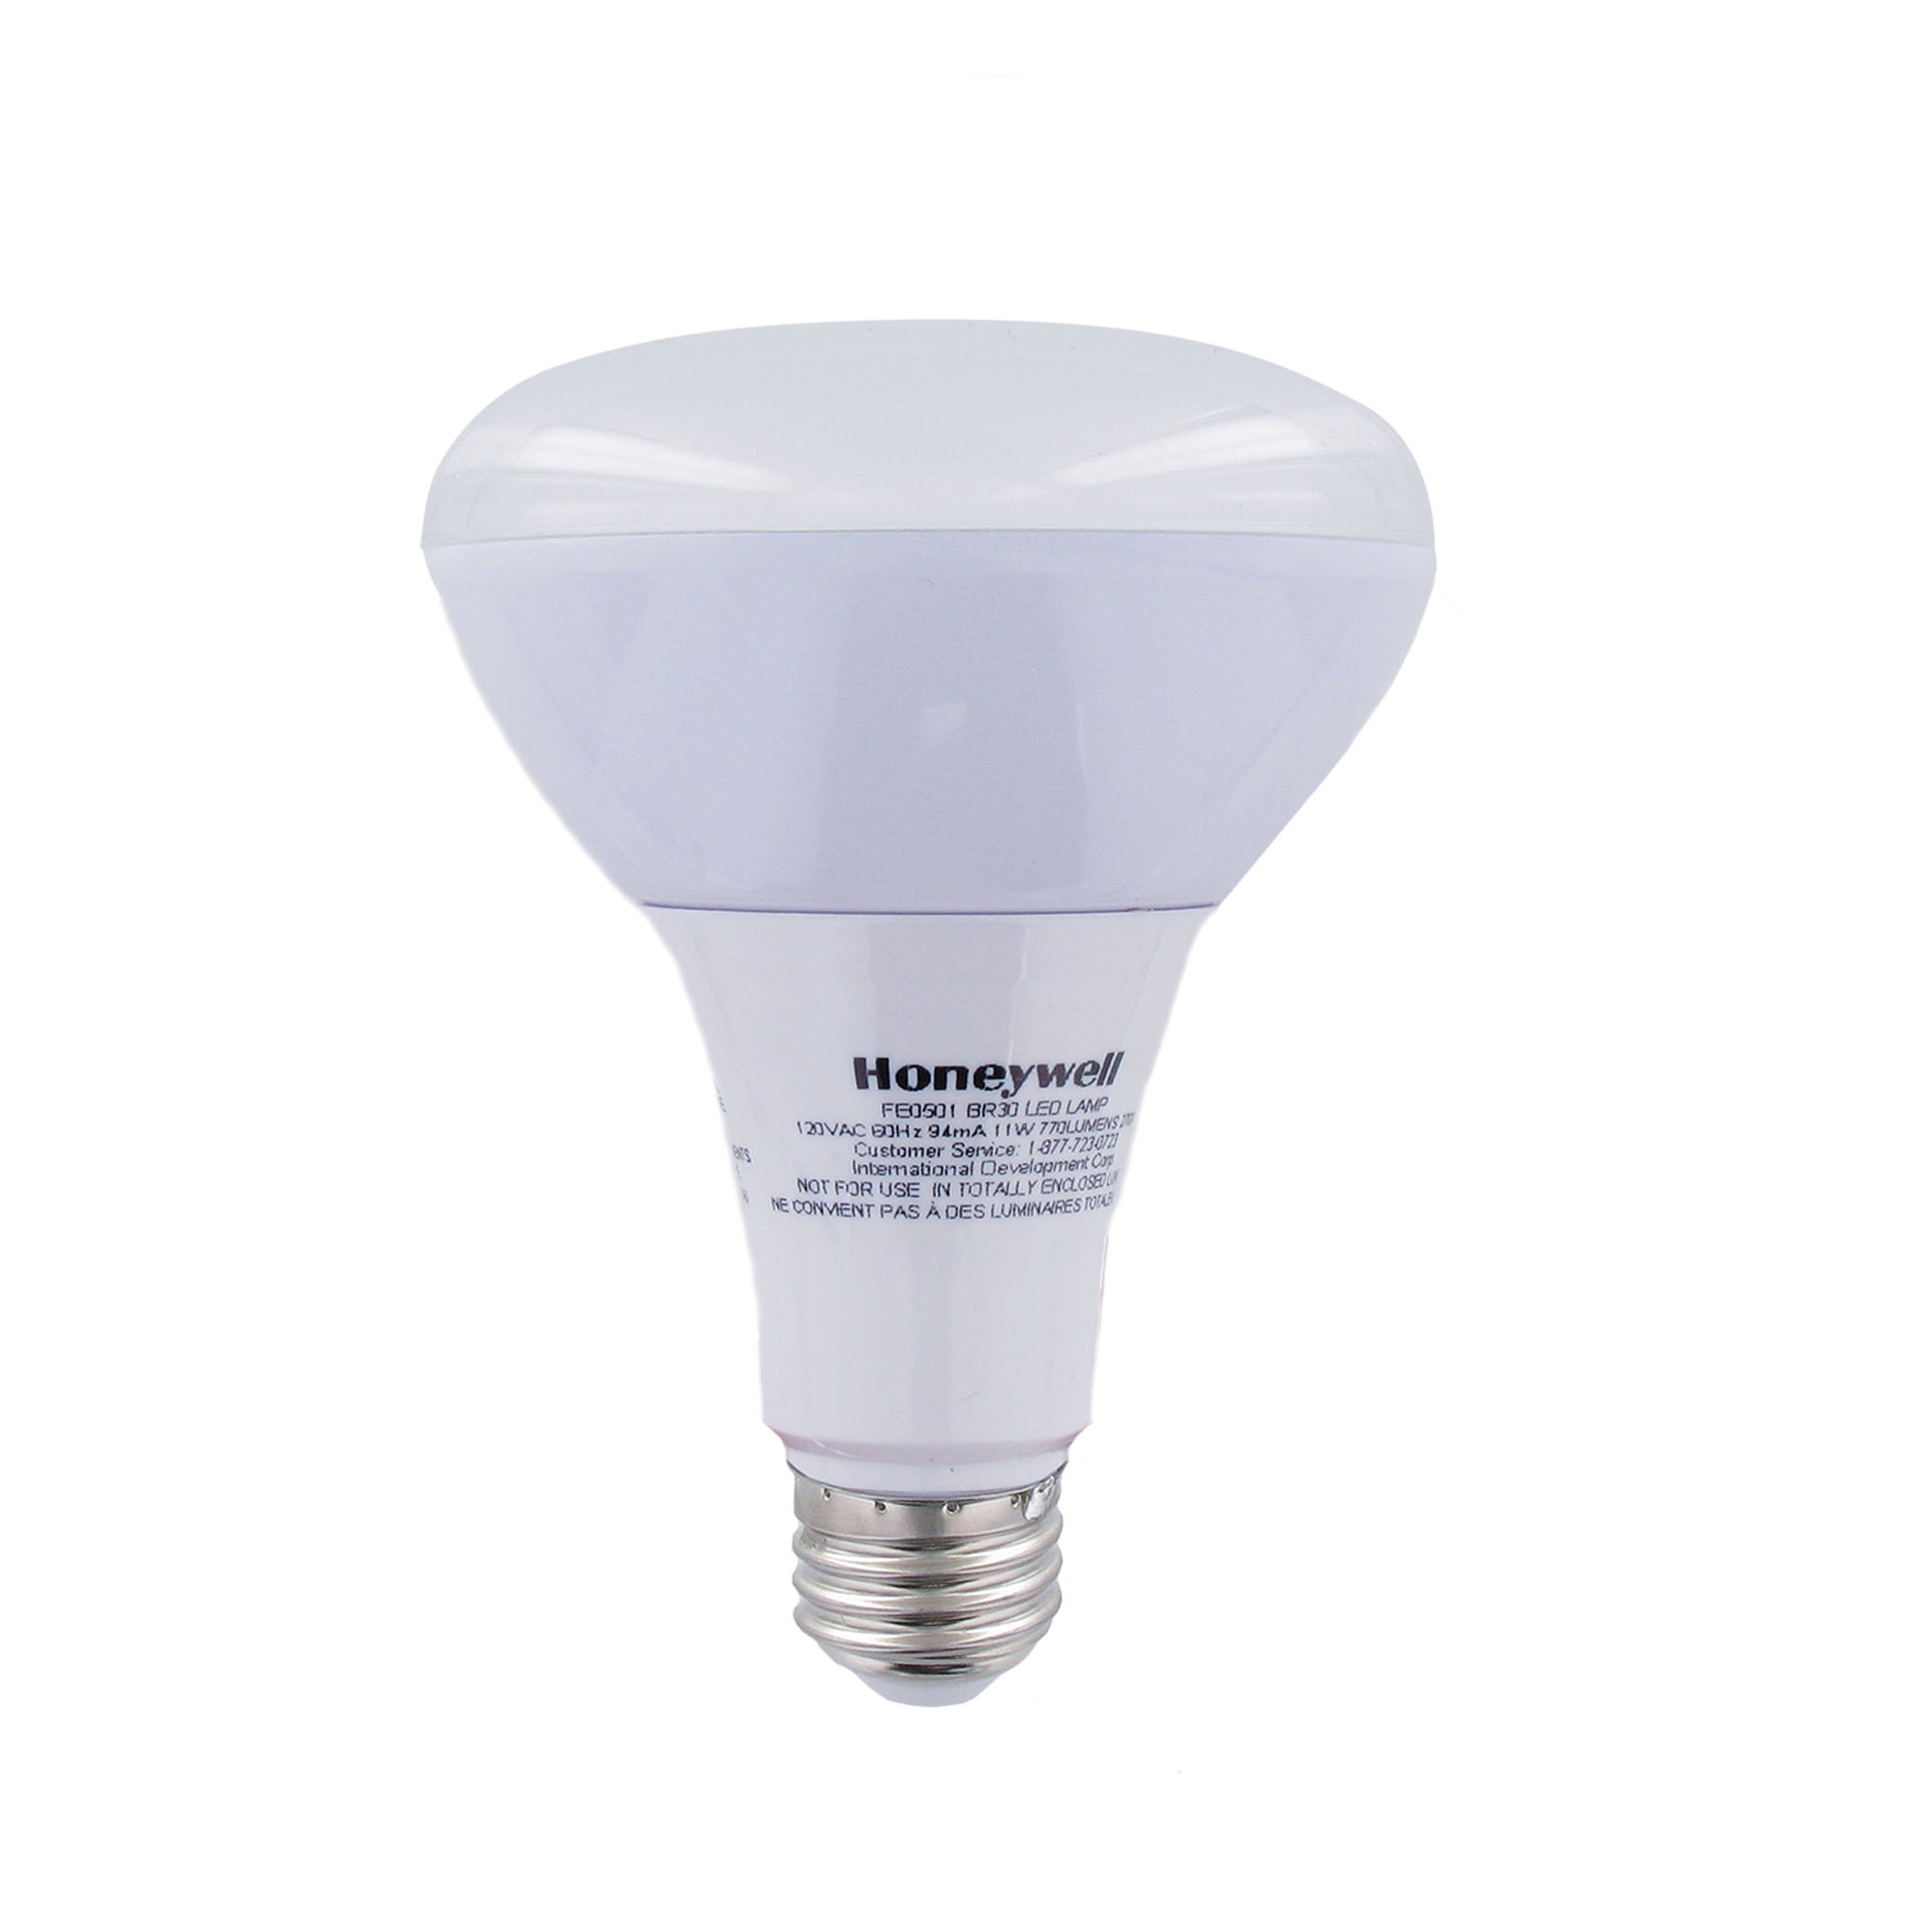 Honeywell fe0501 01 br30 led light bulb 2 pack honeywell store The light bulb store